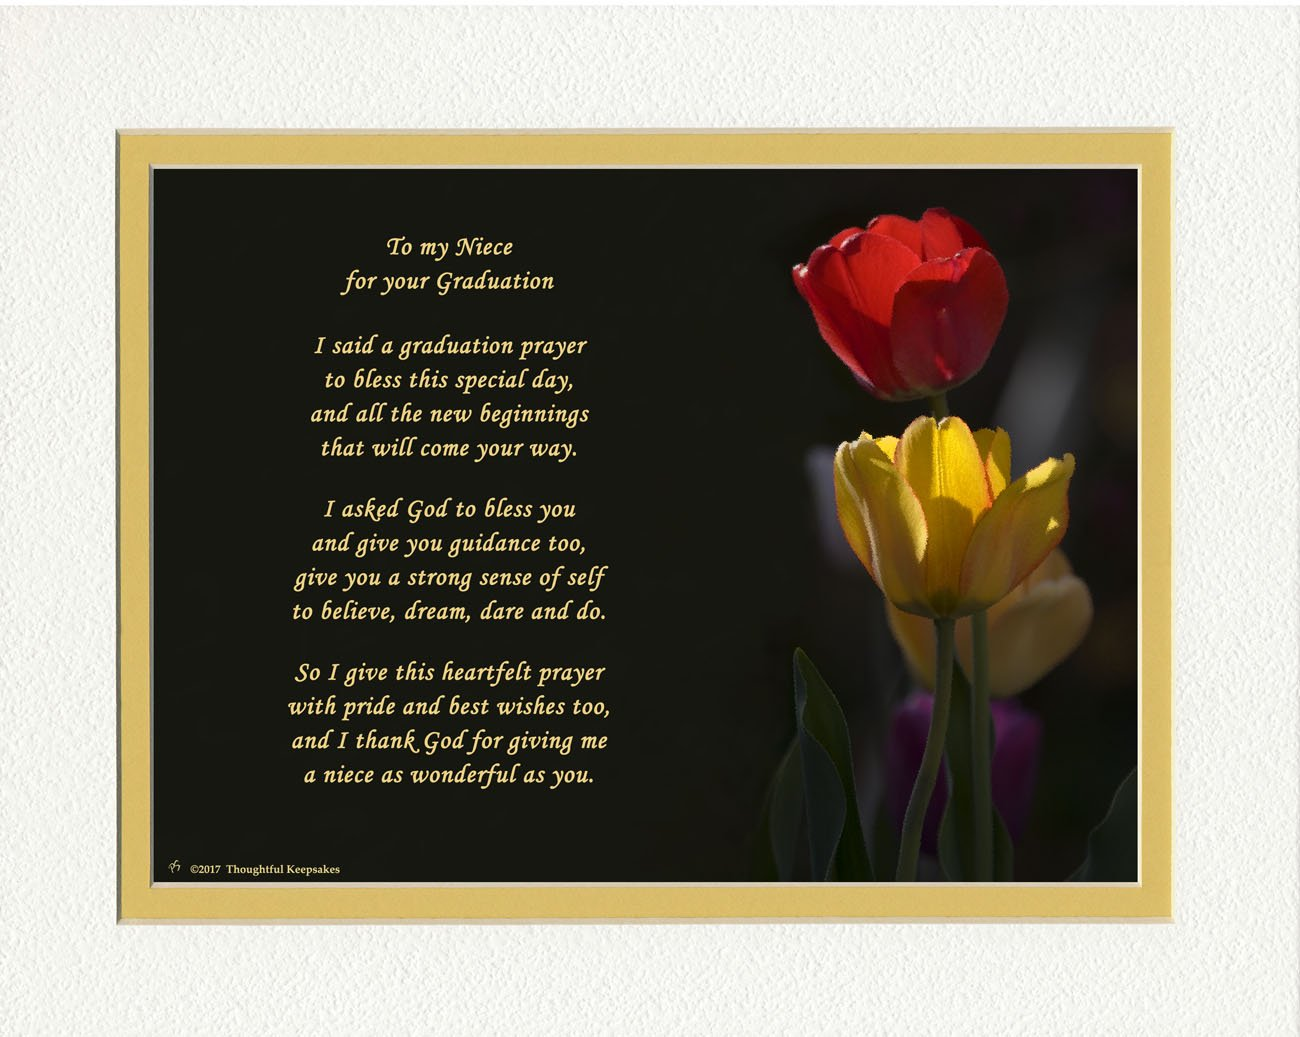 Graduation Gifts Niece with Niece Graduation Prayer Poem Tulips Photo, 8x10 Double Matted. Special Keepsake for Niece. Unique College and High School Grad Gifts.